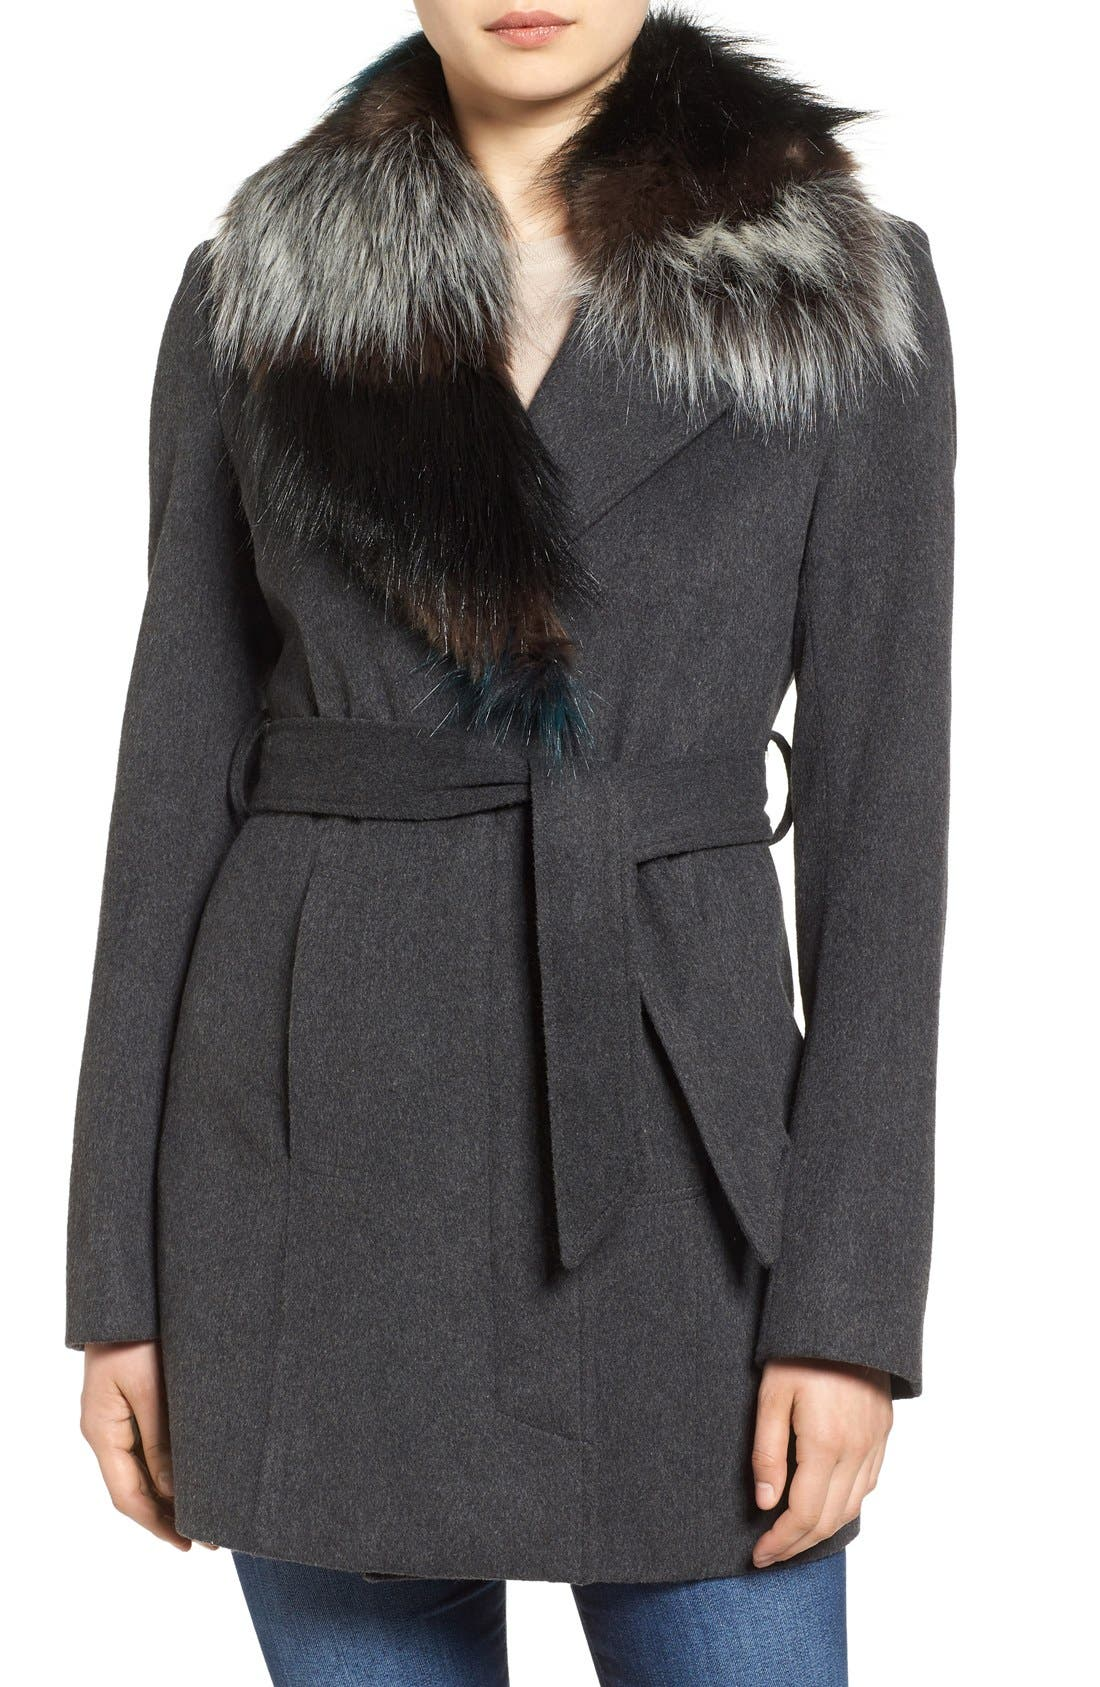 Alternate Image 1 Selected - Sam Edelman Wool Coat with Removable Faux Fur Collar